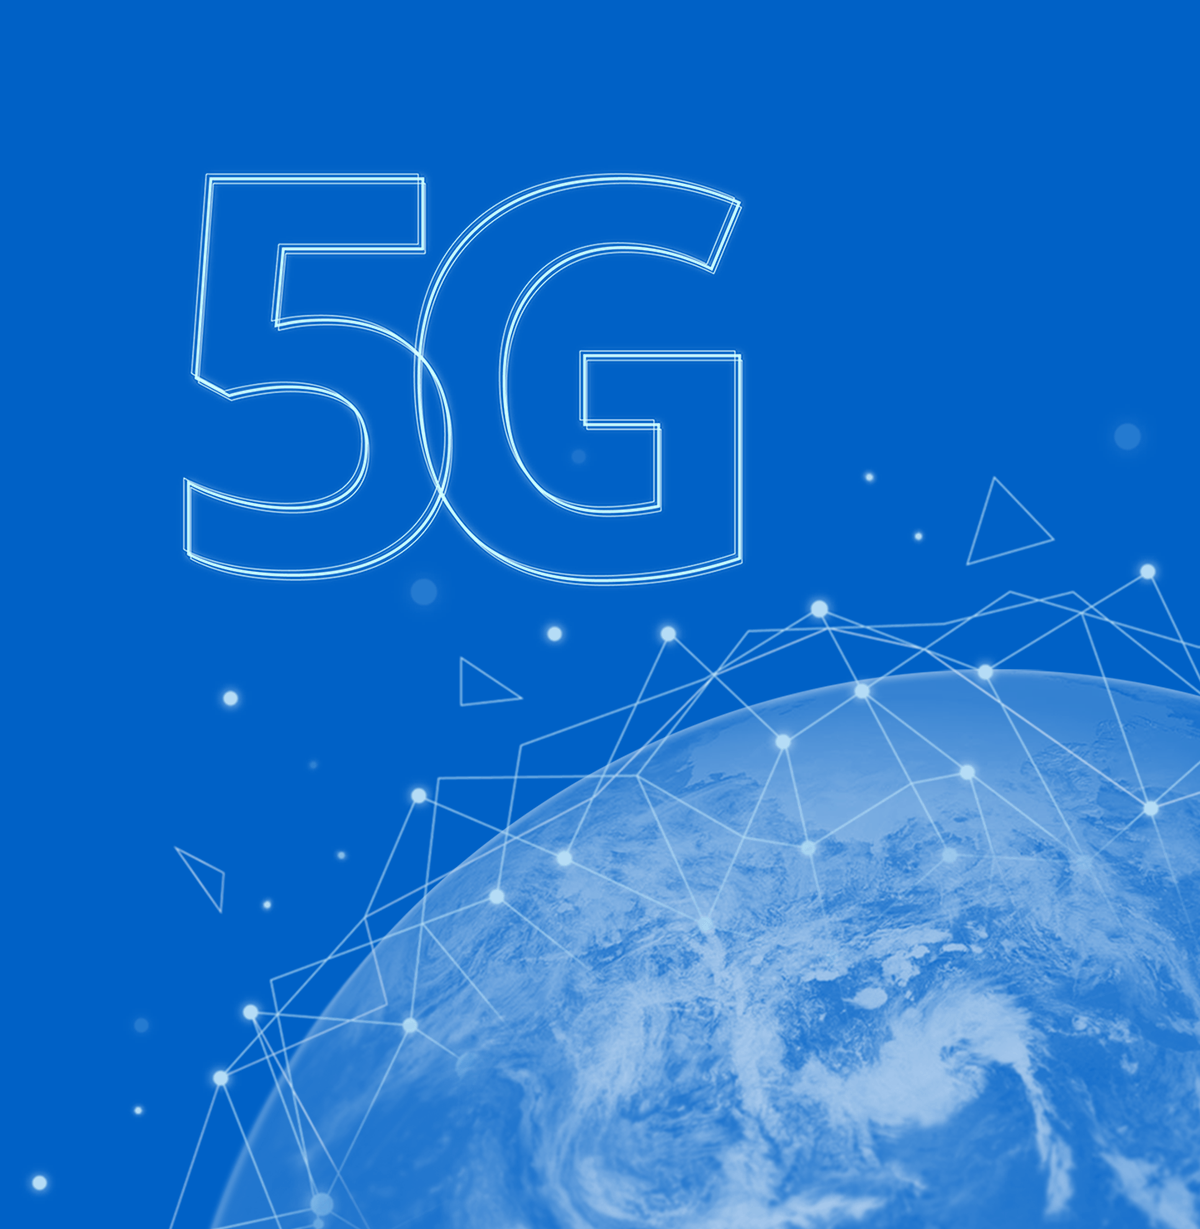 Proven 5G experience